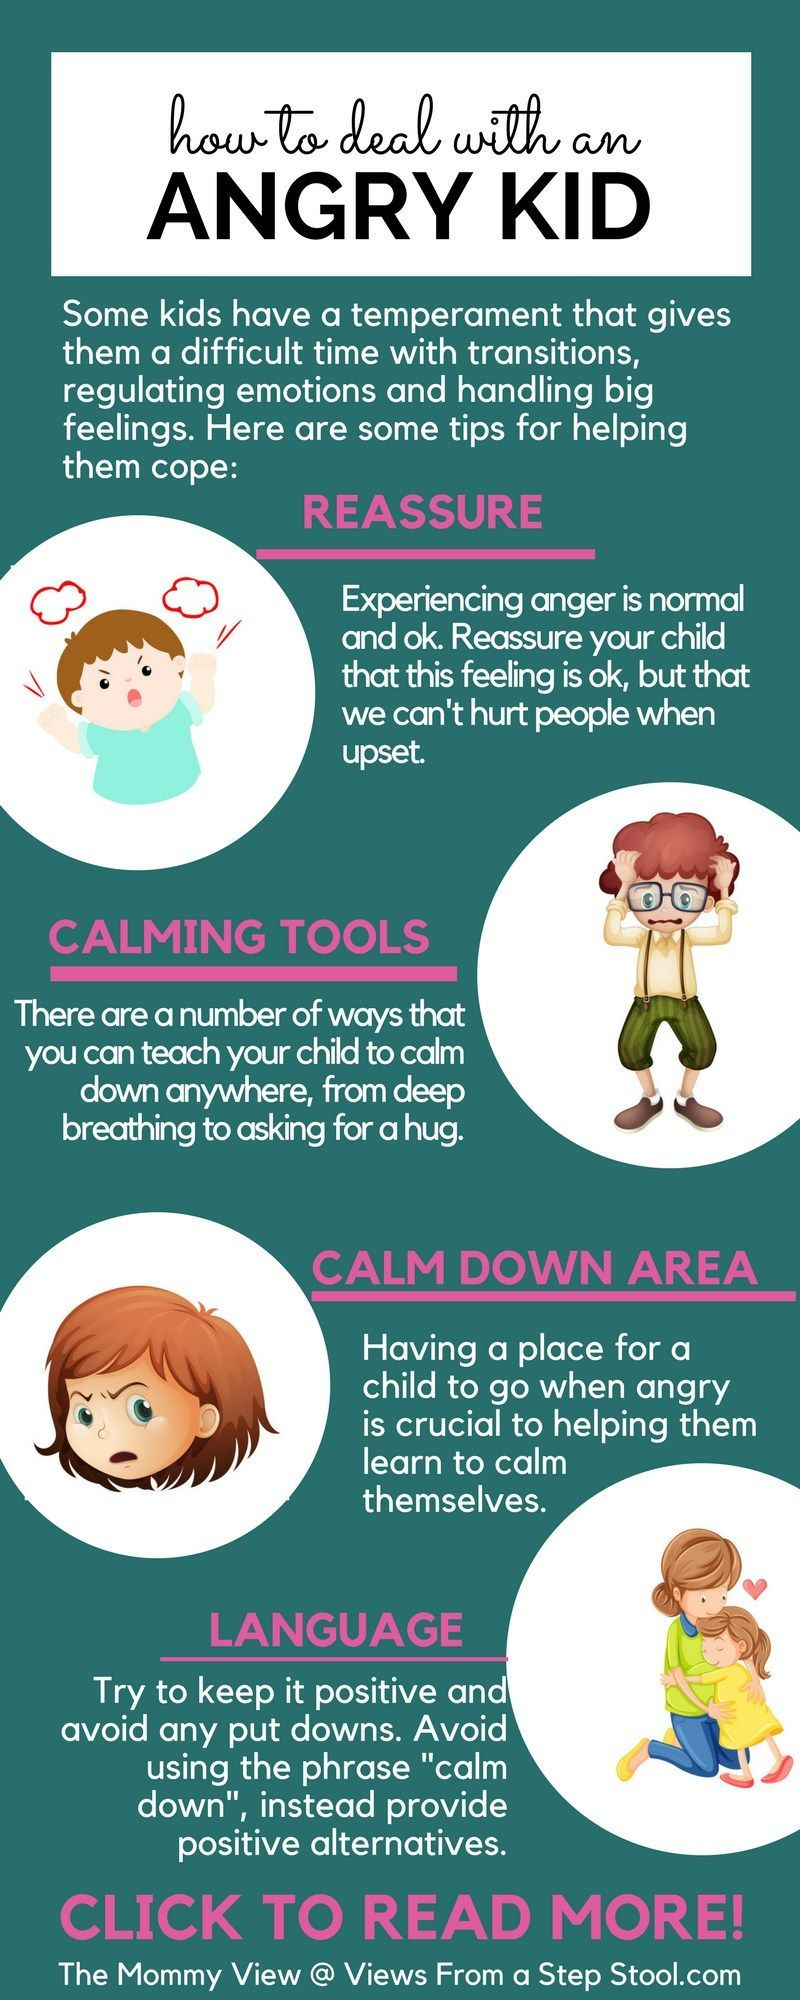 Ways to deal with an angry kid through reassurance and